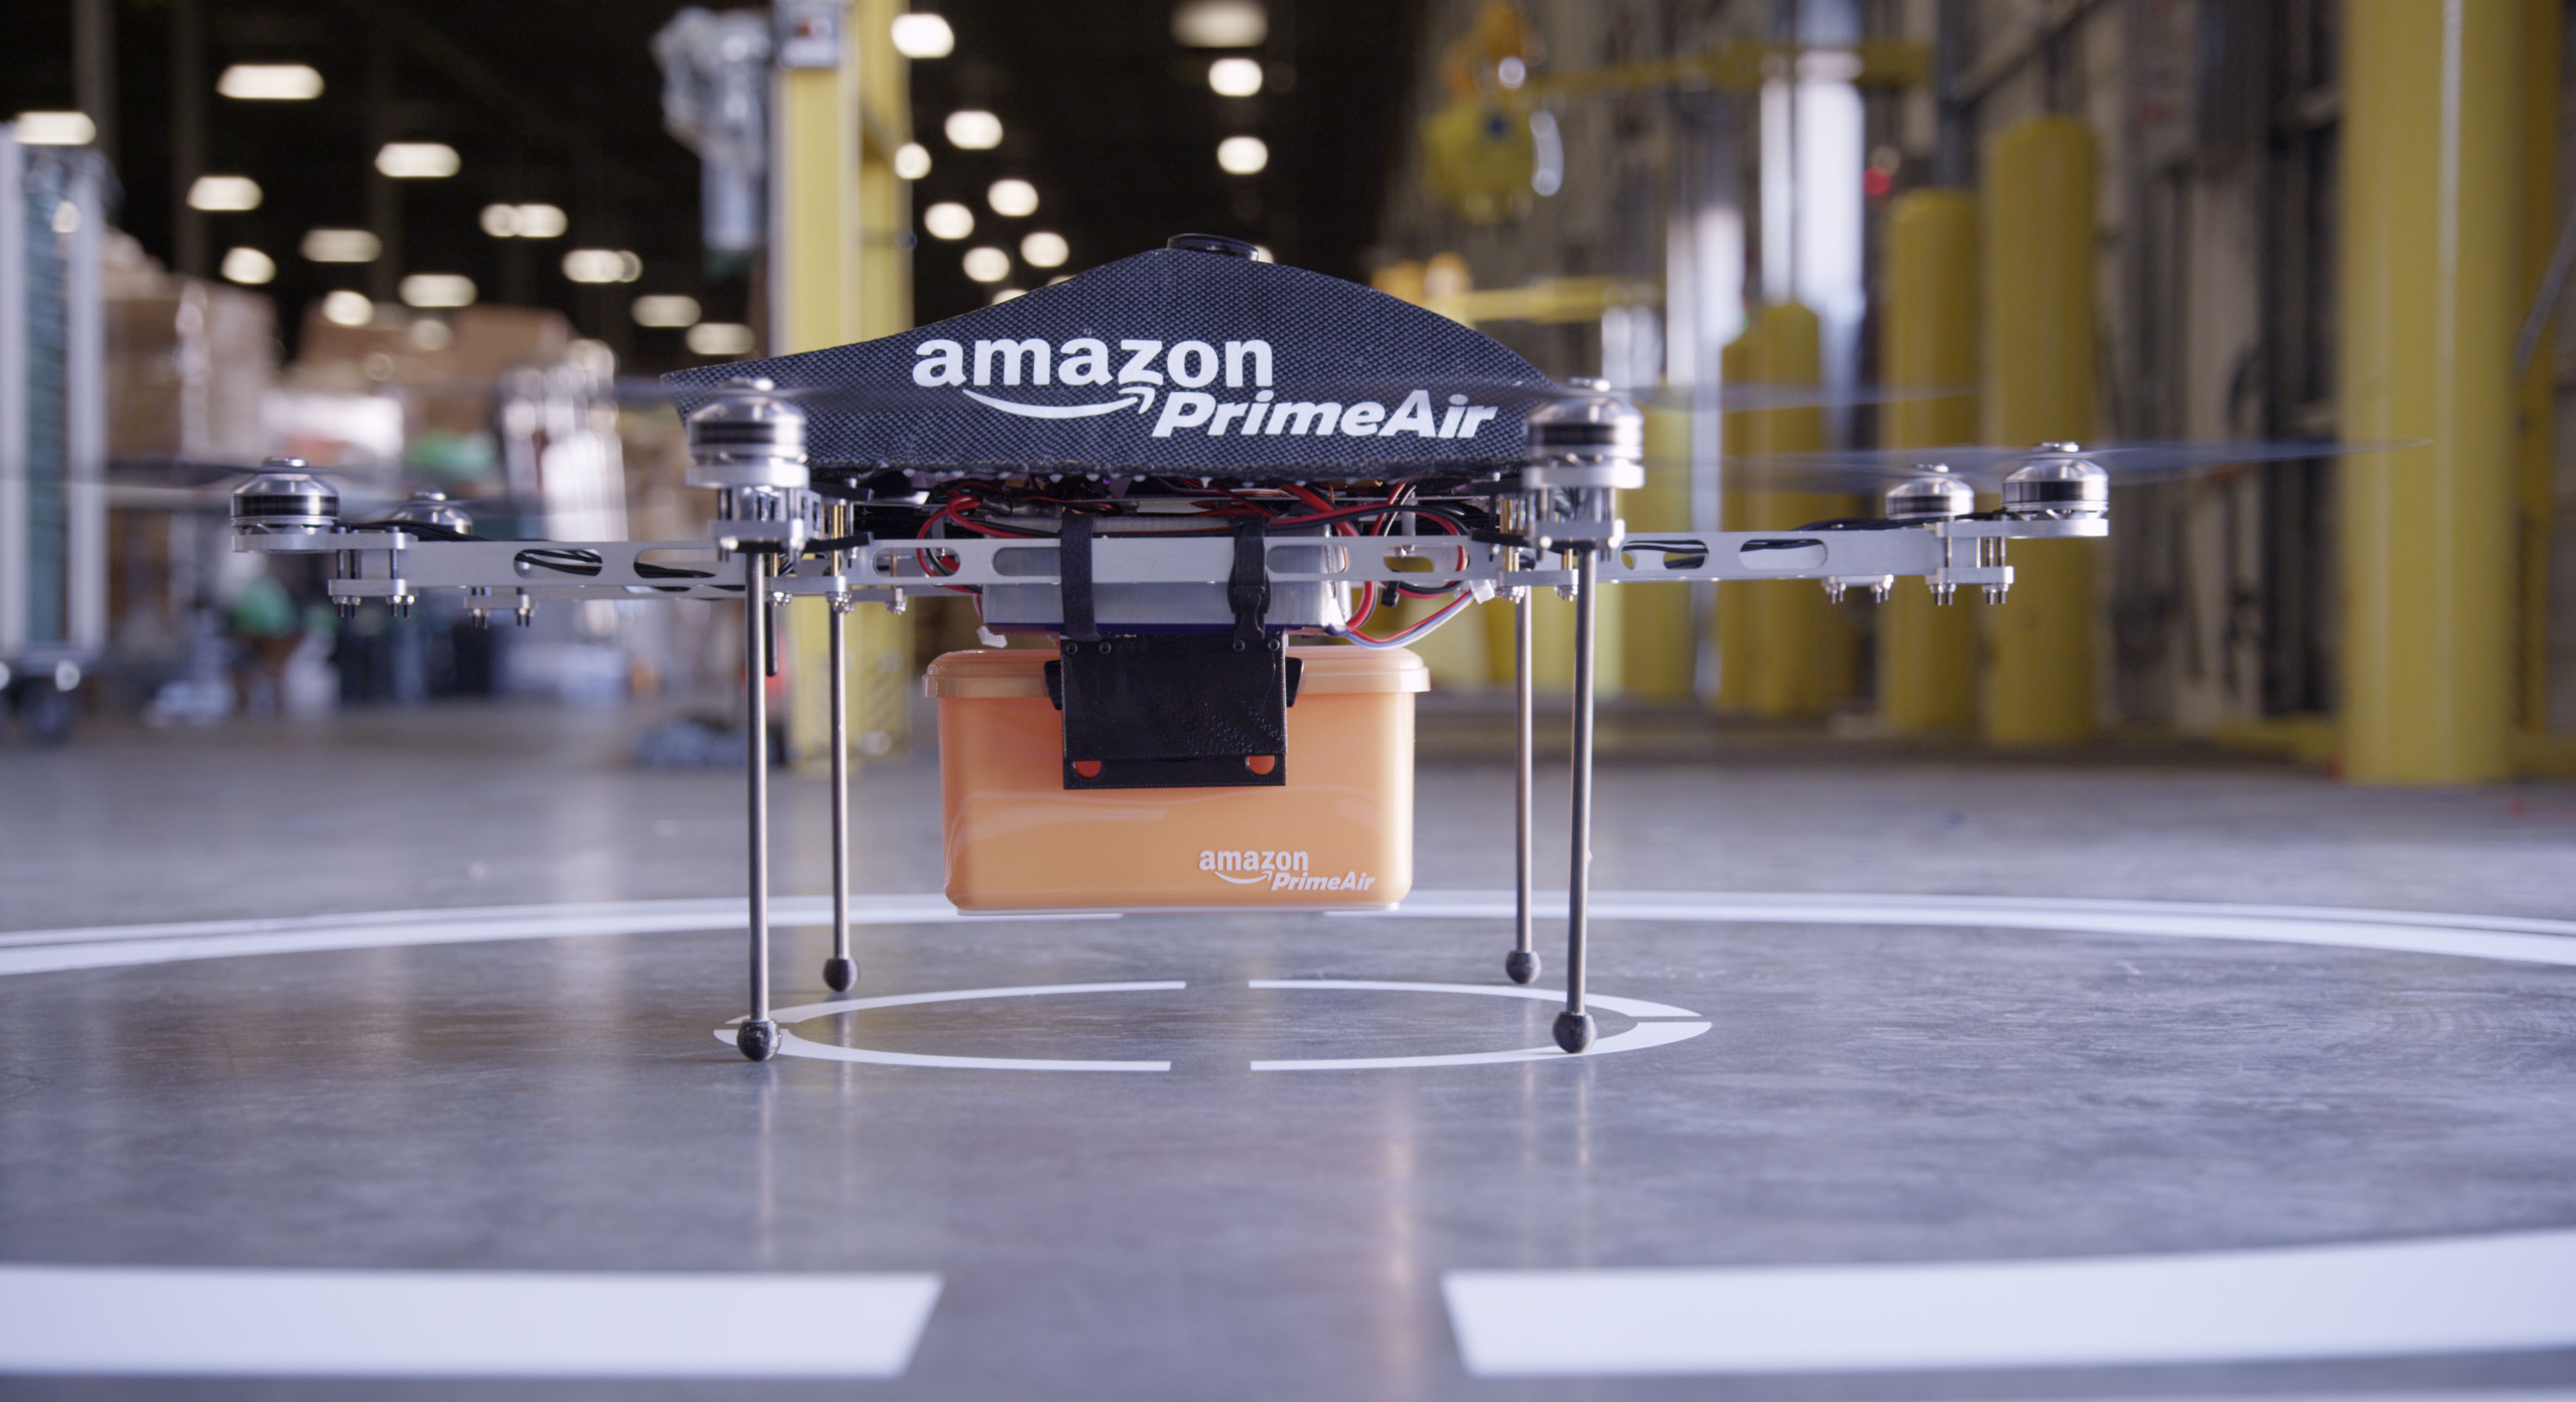 Prime Air — a delivery system from Amazon designed to safely get packages to customers in 30 minutes or less using unmanned aerial vehicles, also called drones.